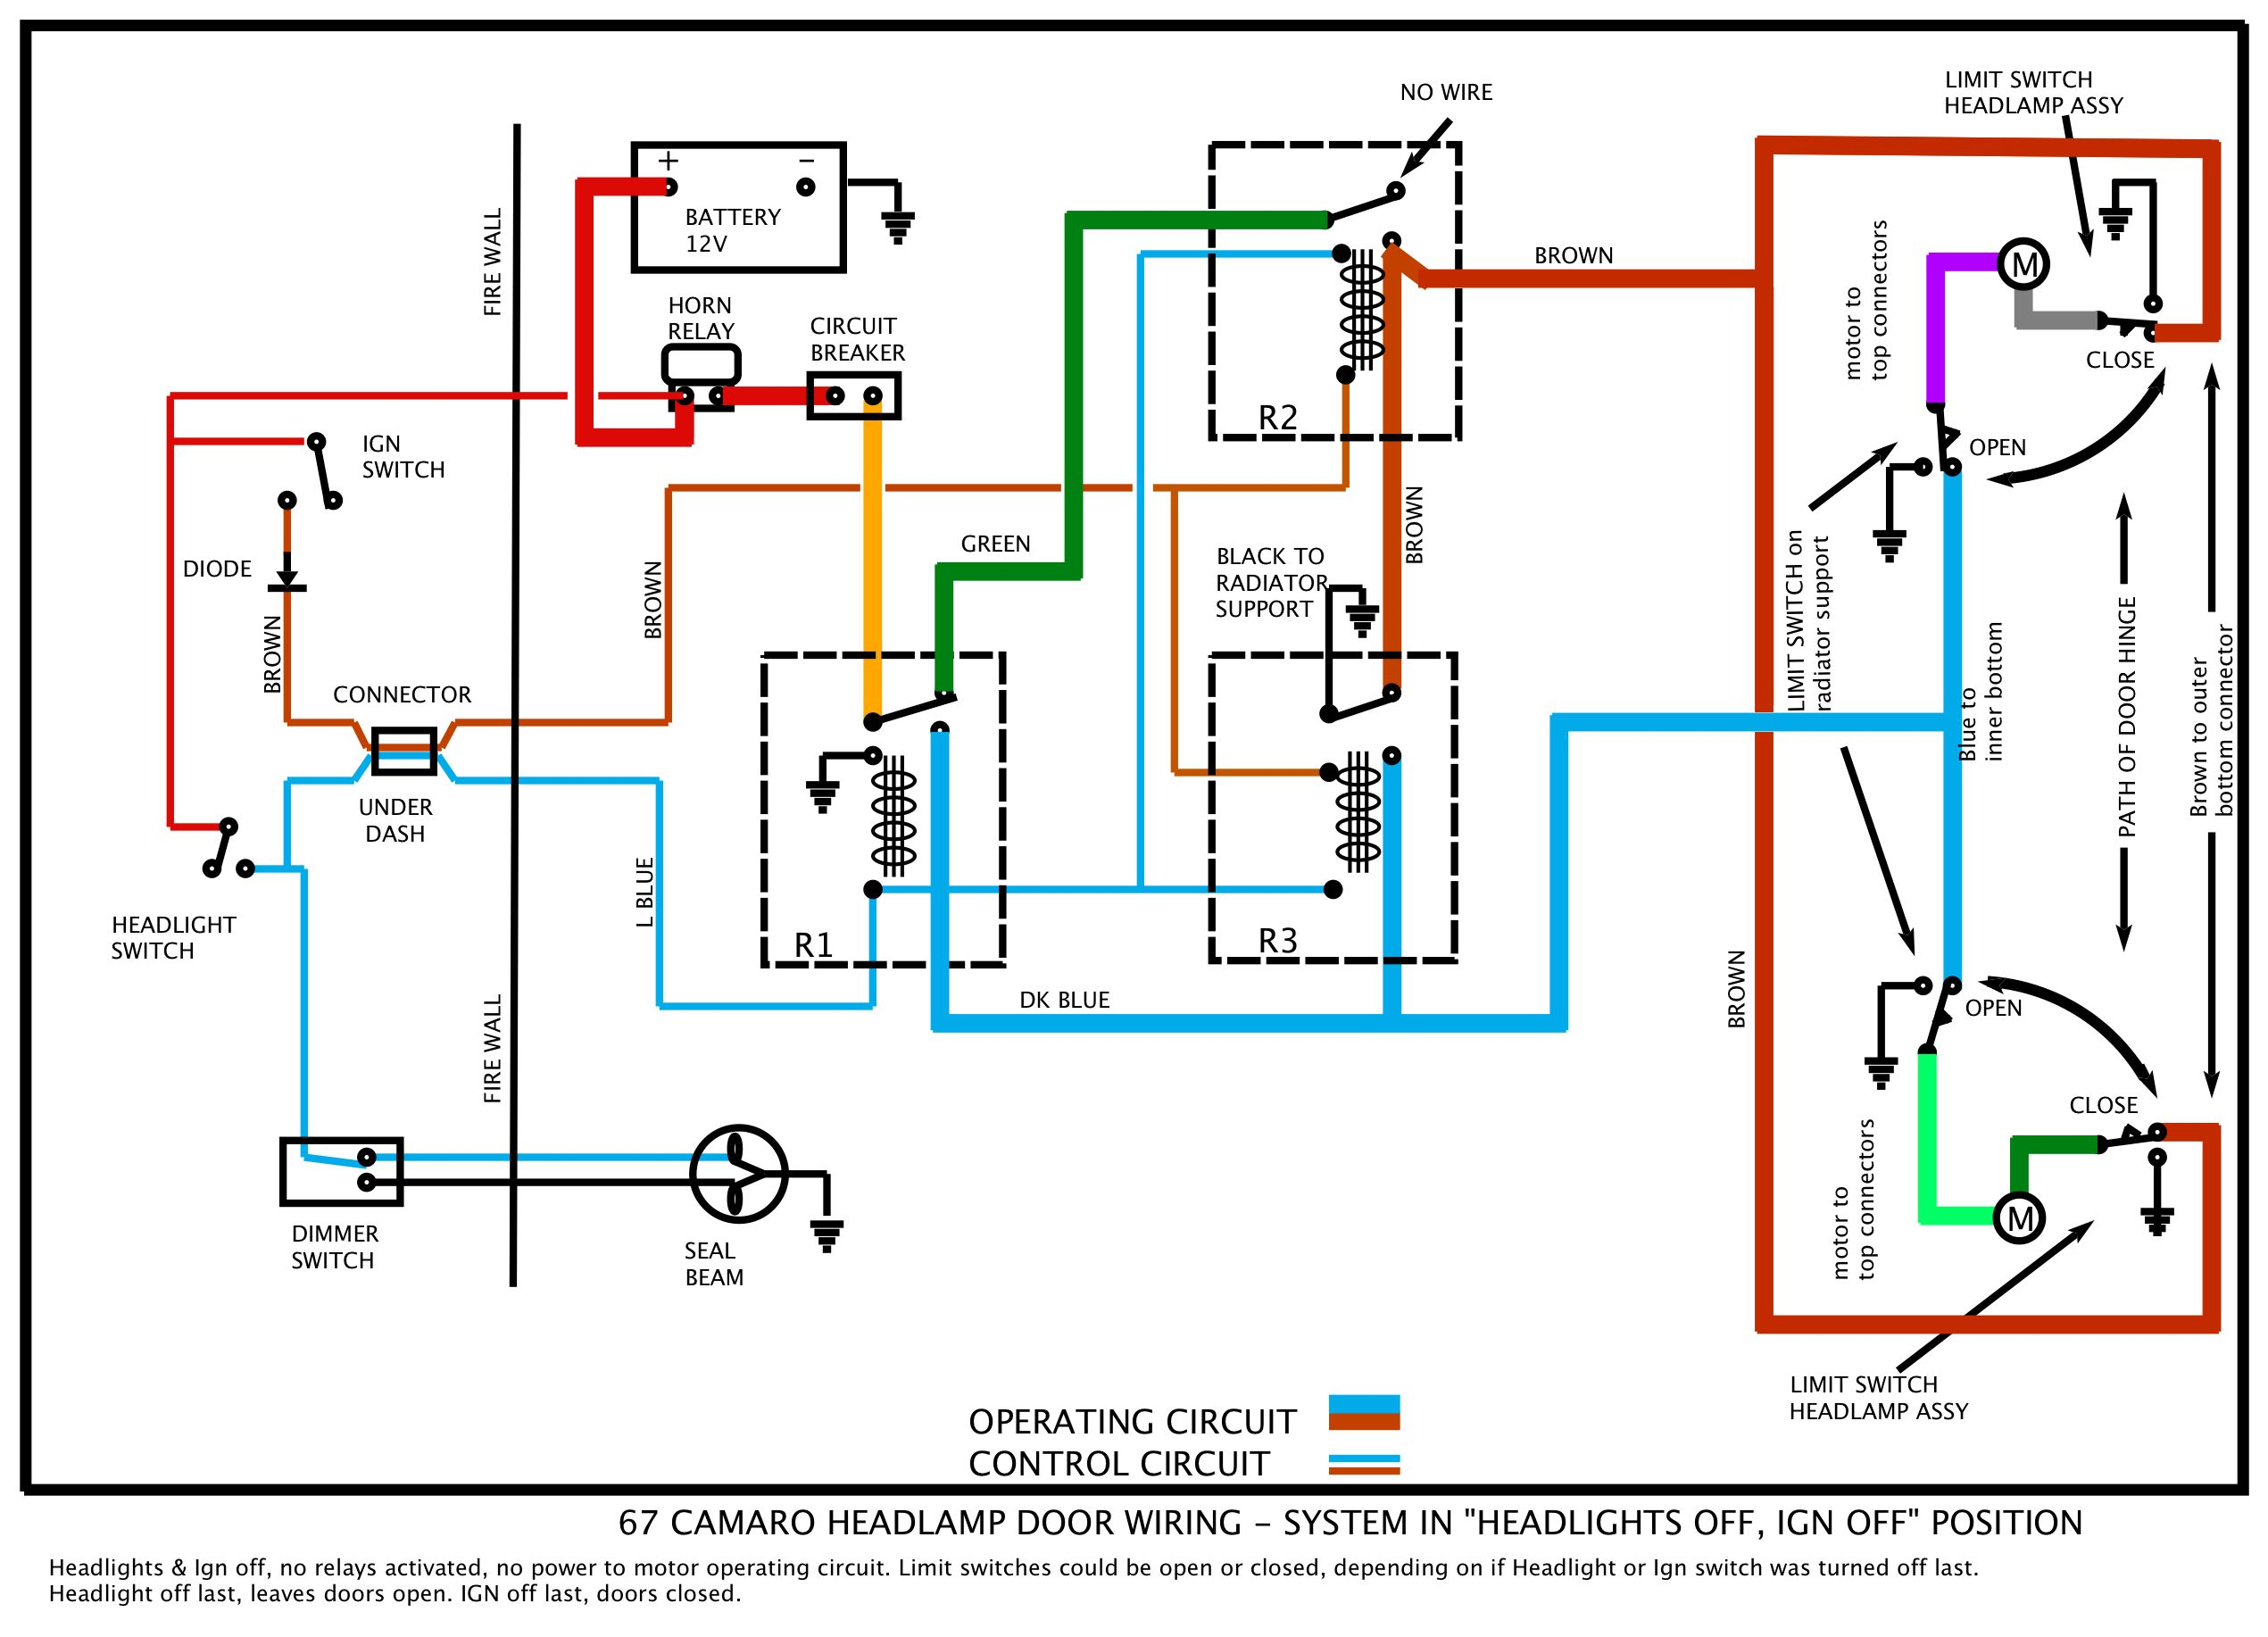 67_RS_HL_off_ign_off 67 camaro wiring diagram 67 camaro door diagram \u2022 free wiring 1968 camaro wiring harness at gsmx.co